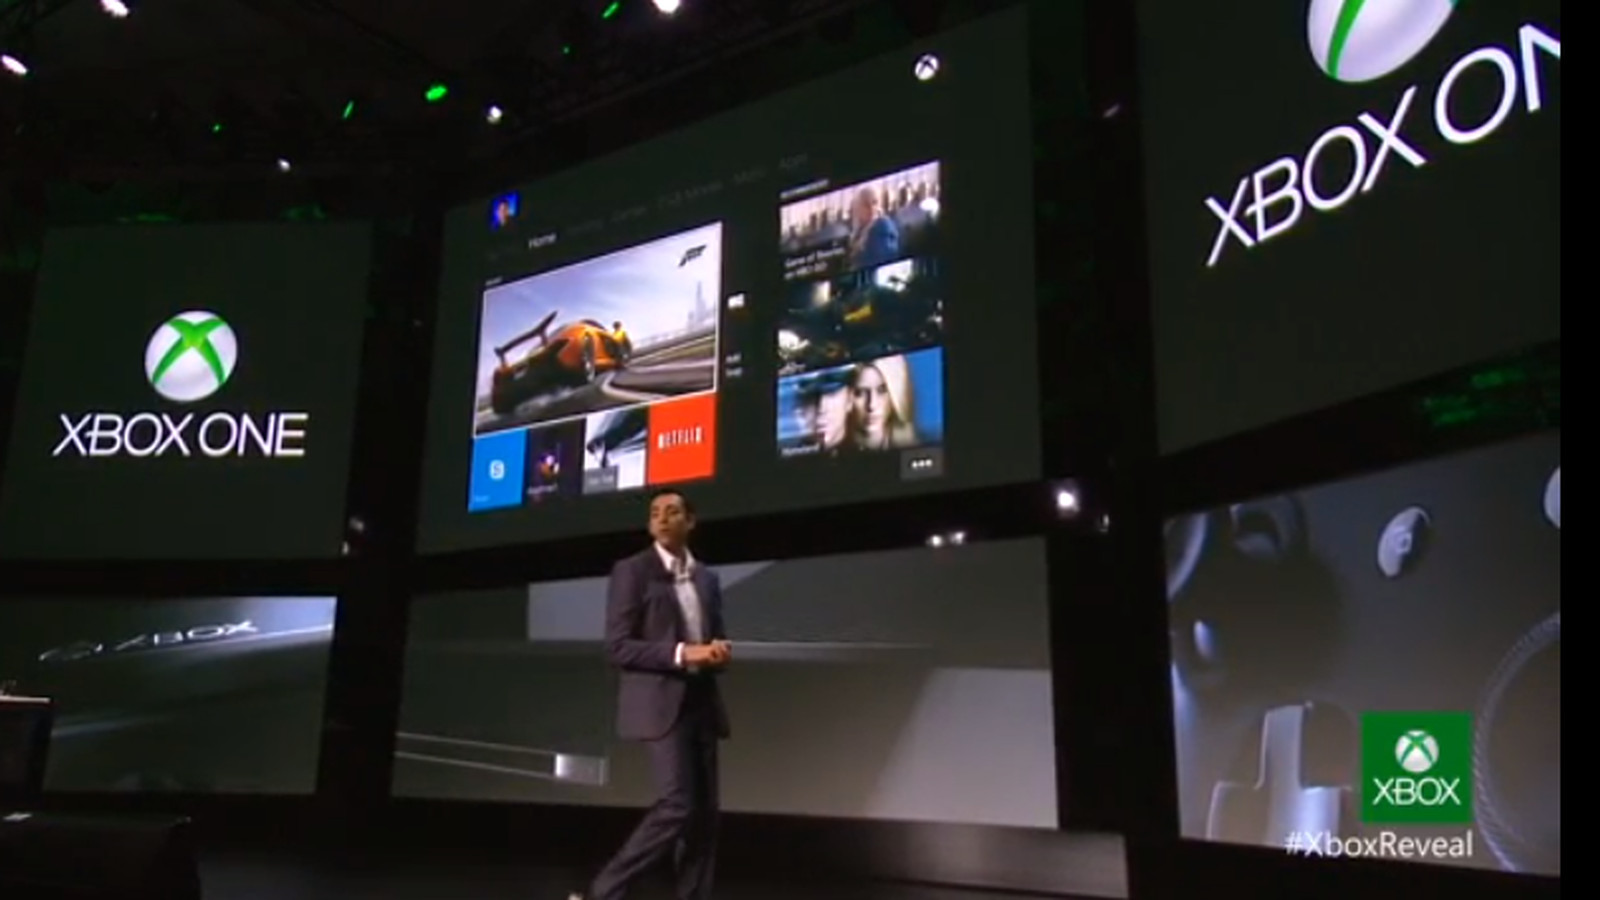 xbox one architect operating system is the xbox one s